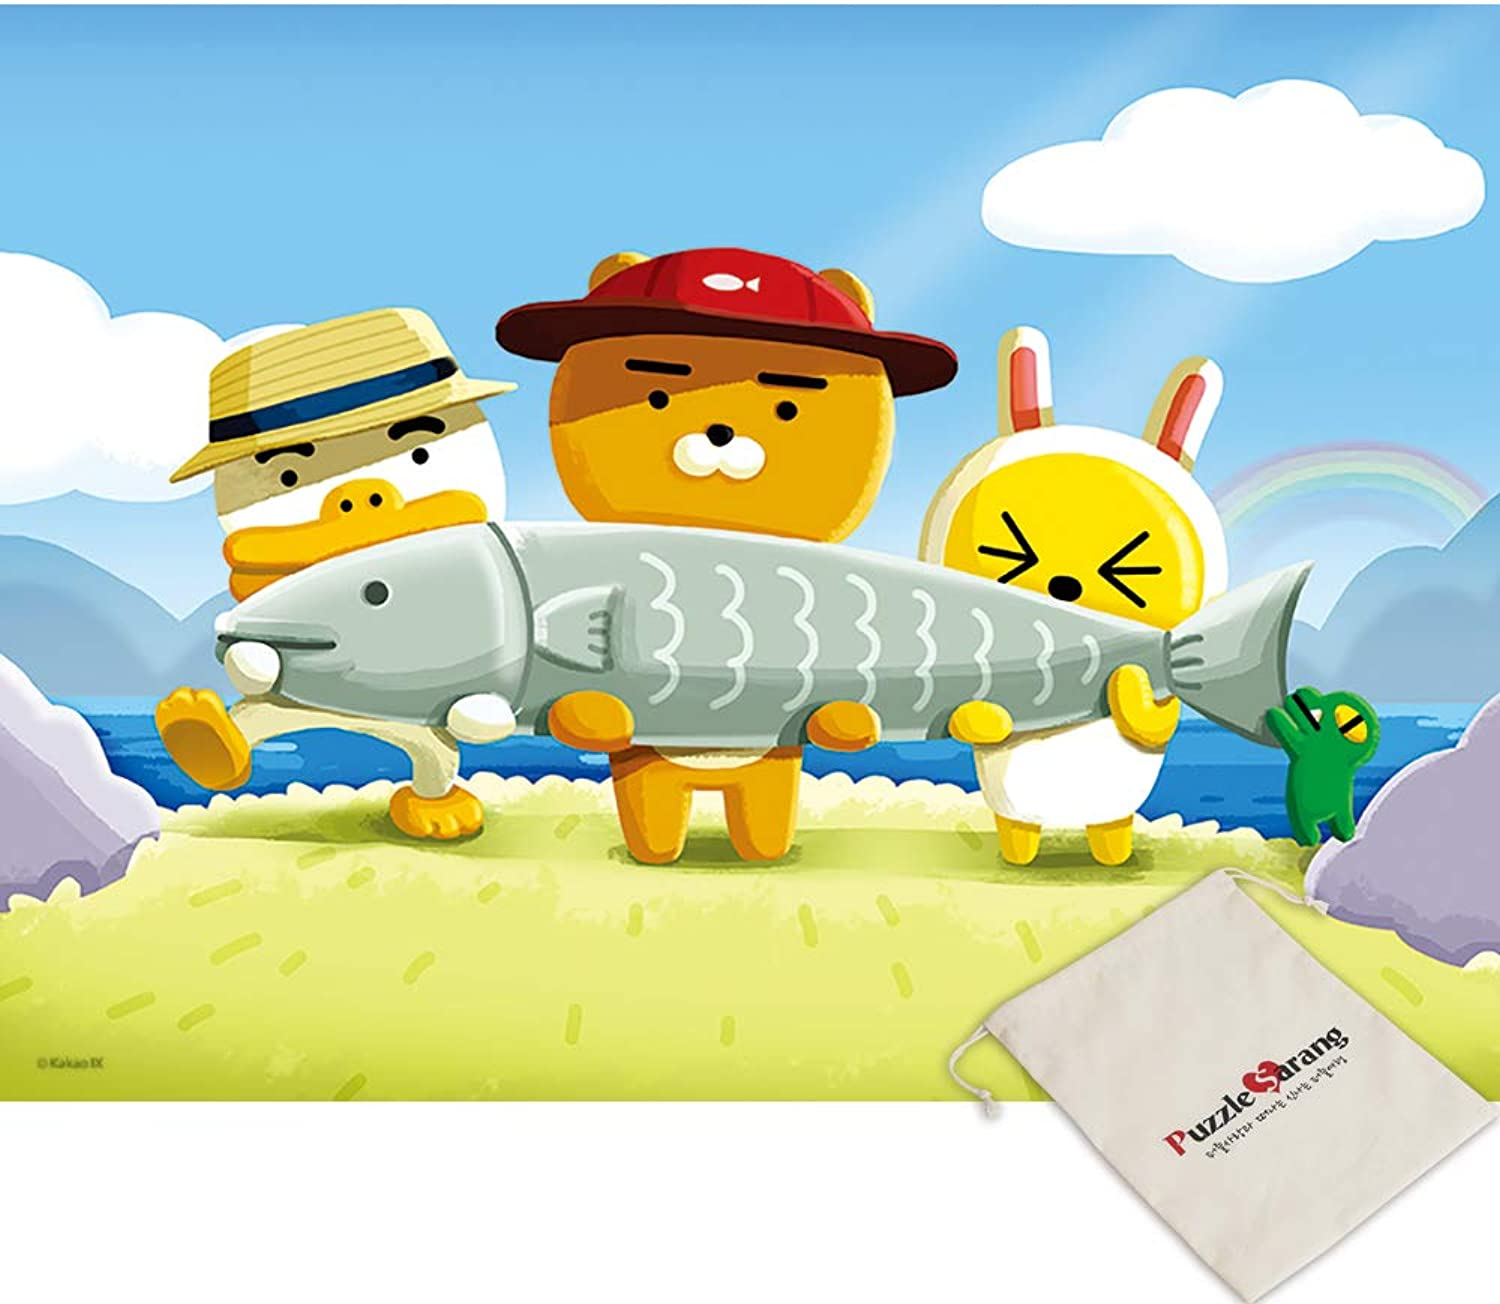 Yearimi, City Fisherman, Kakao Friends - 800 Small Size Piece Jigsaw Puzzle [Pouch Included]